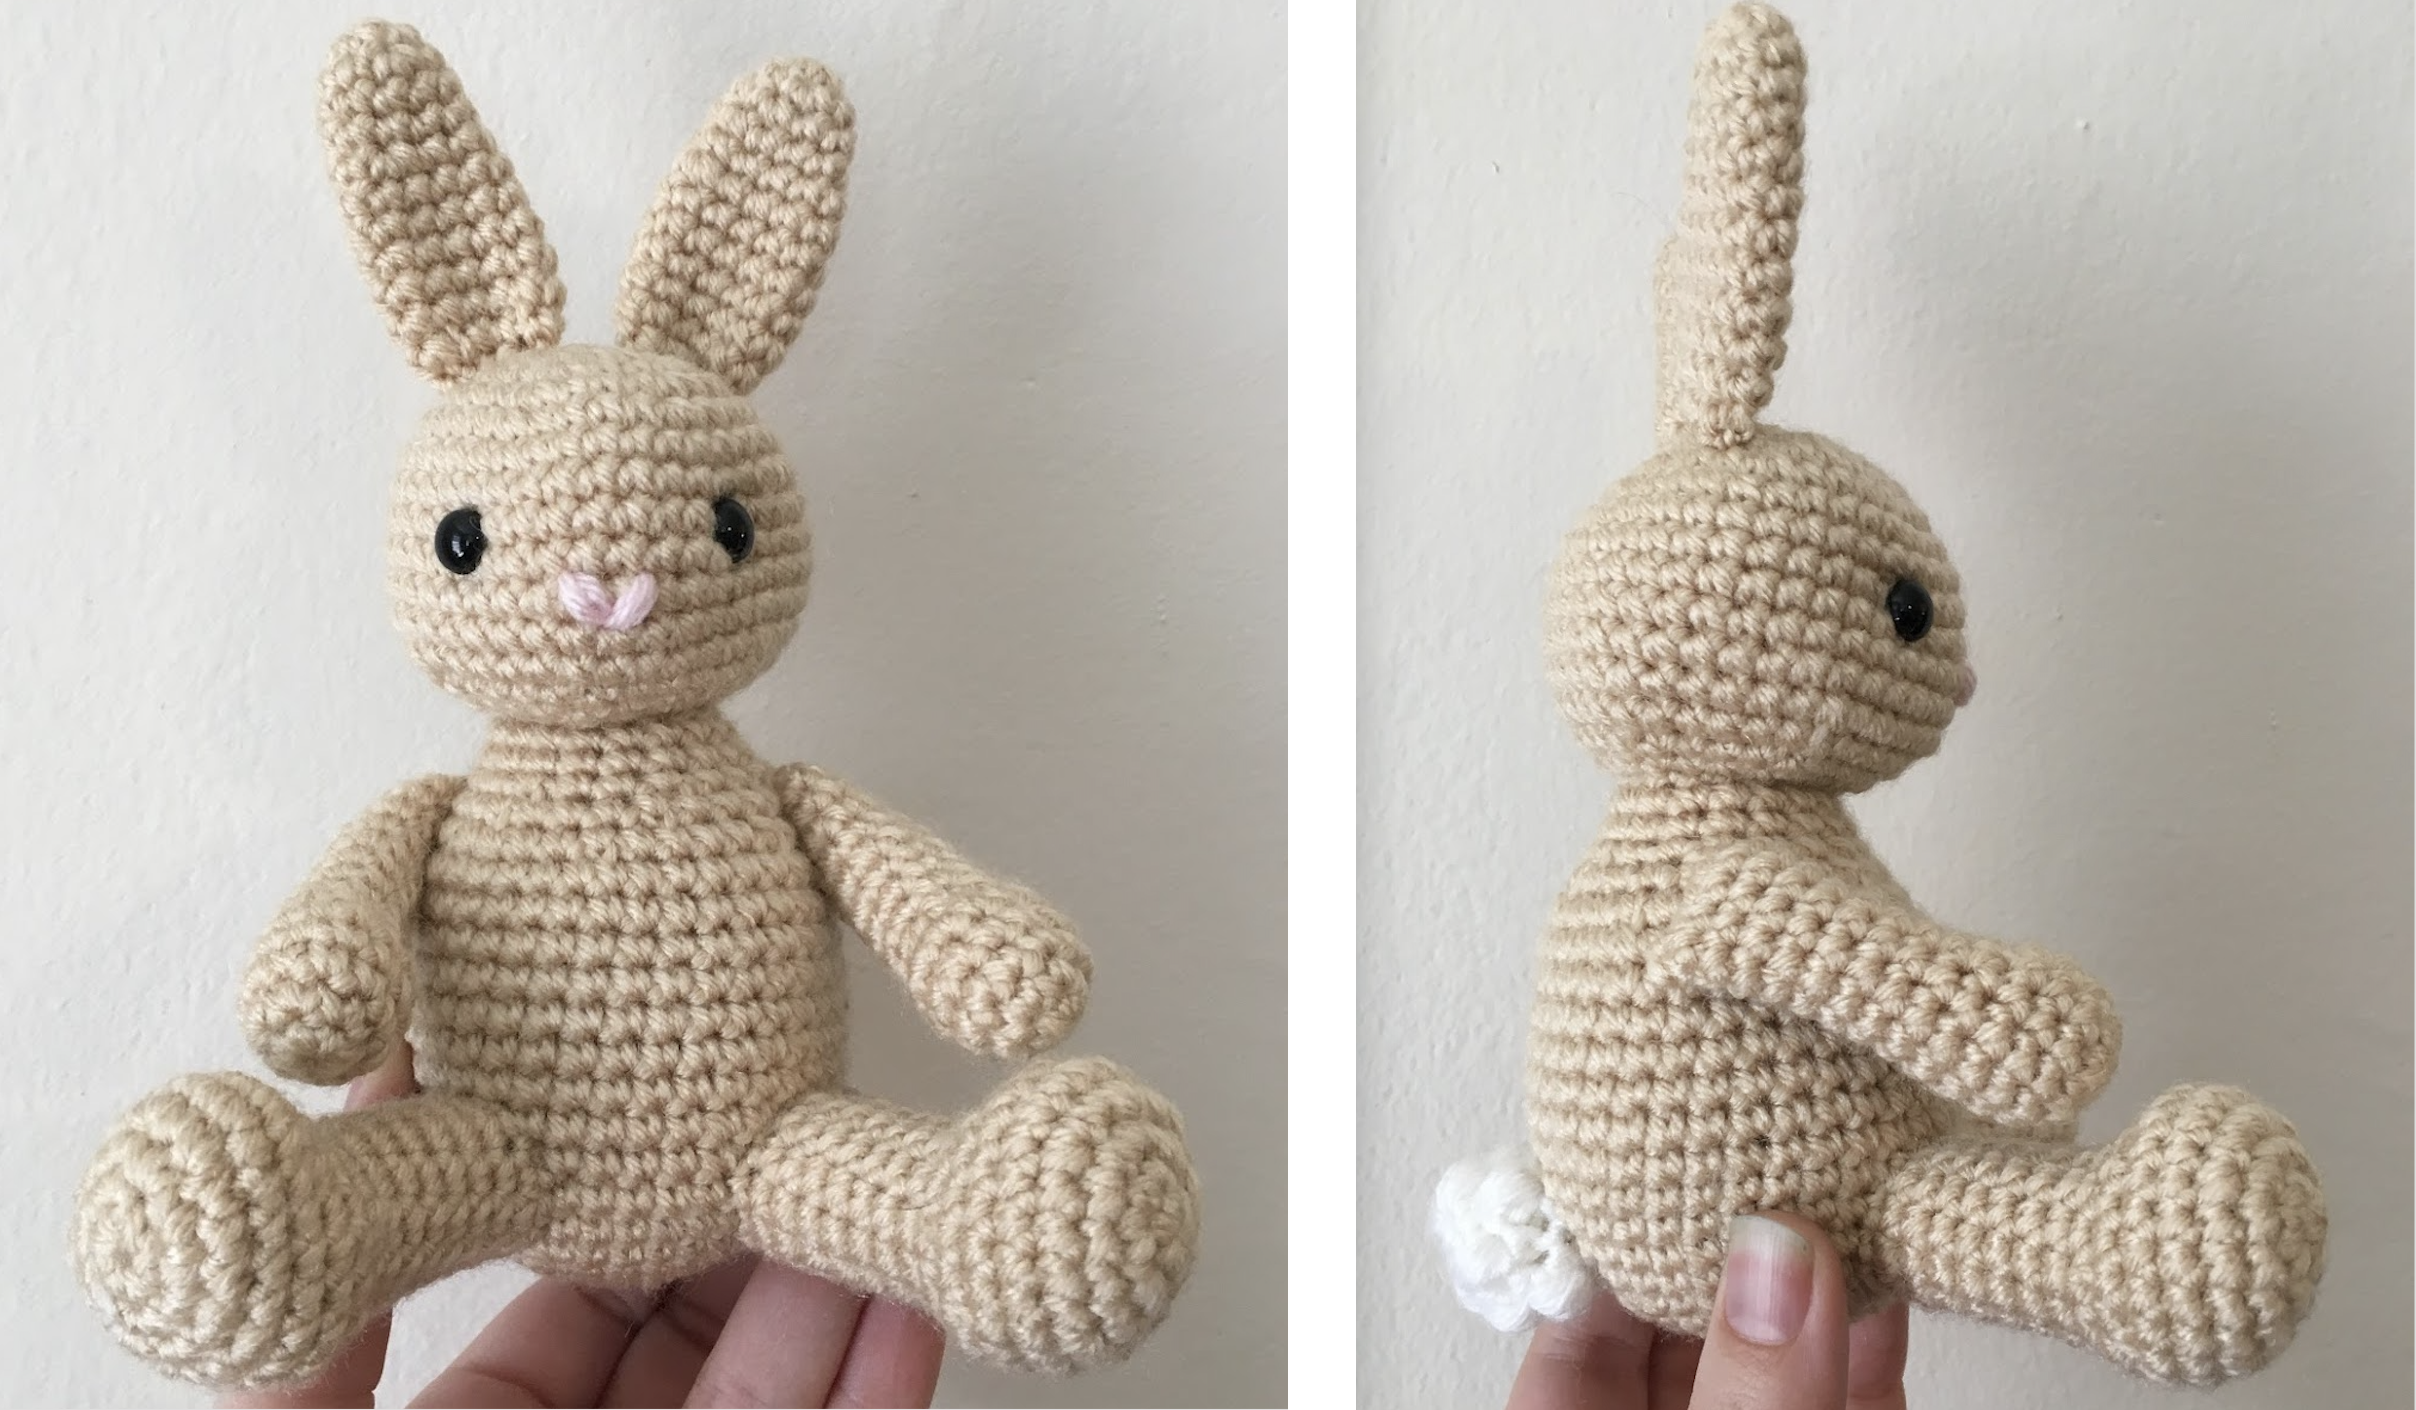 Zodiac Rabbit front and side